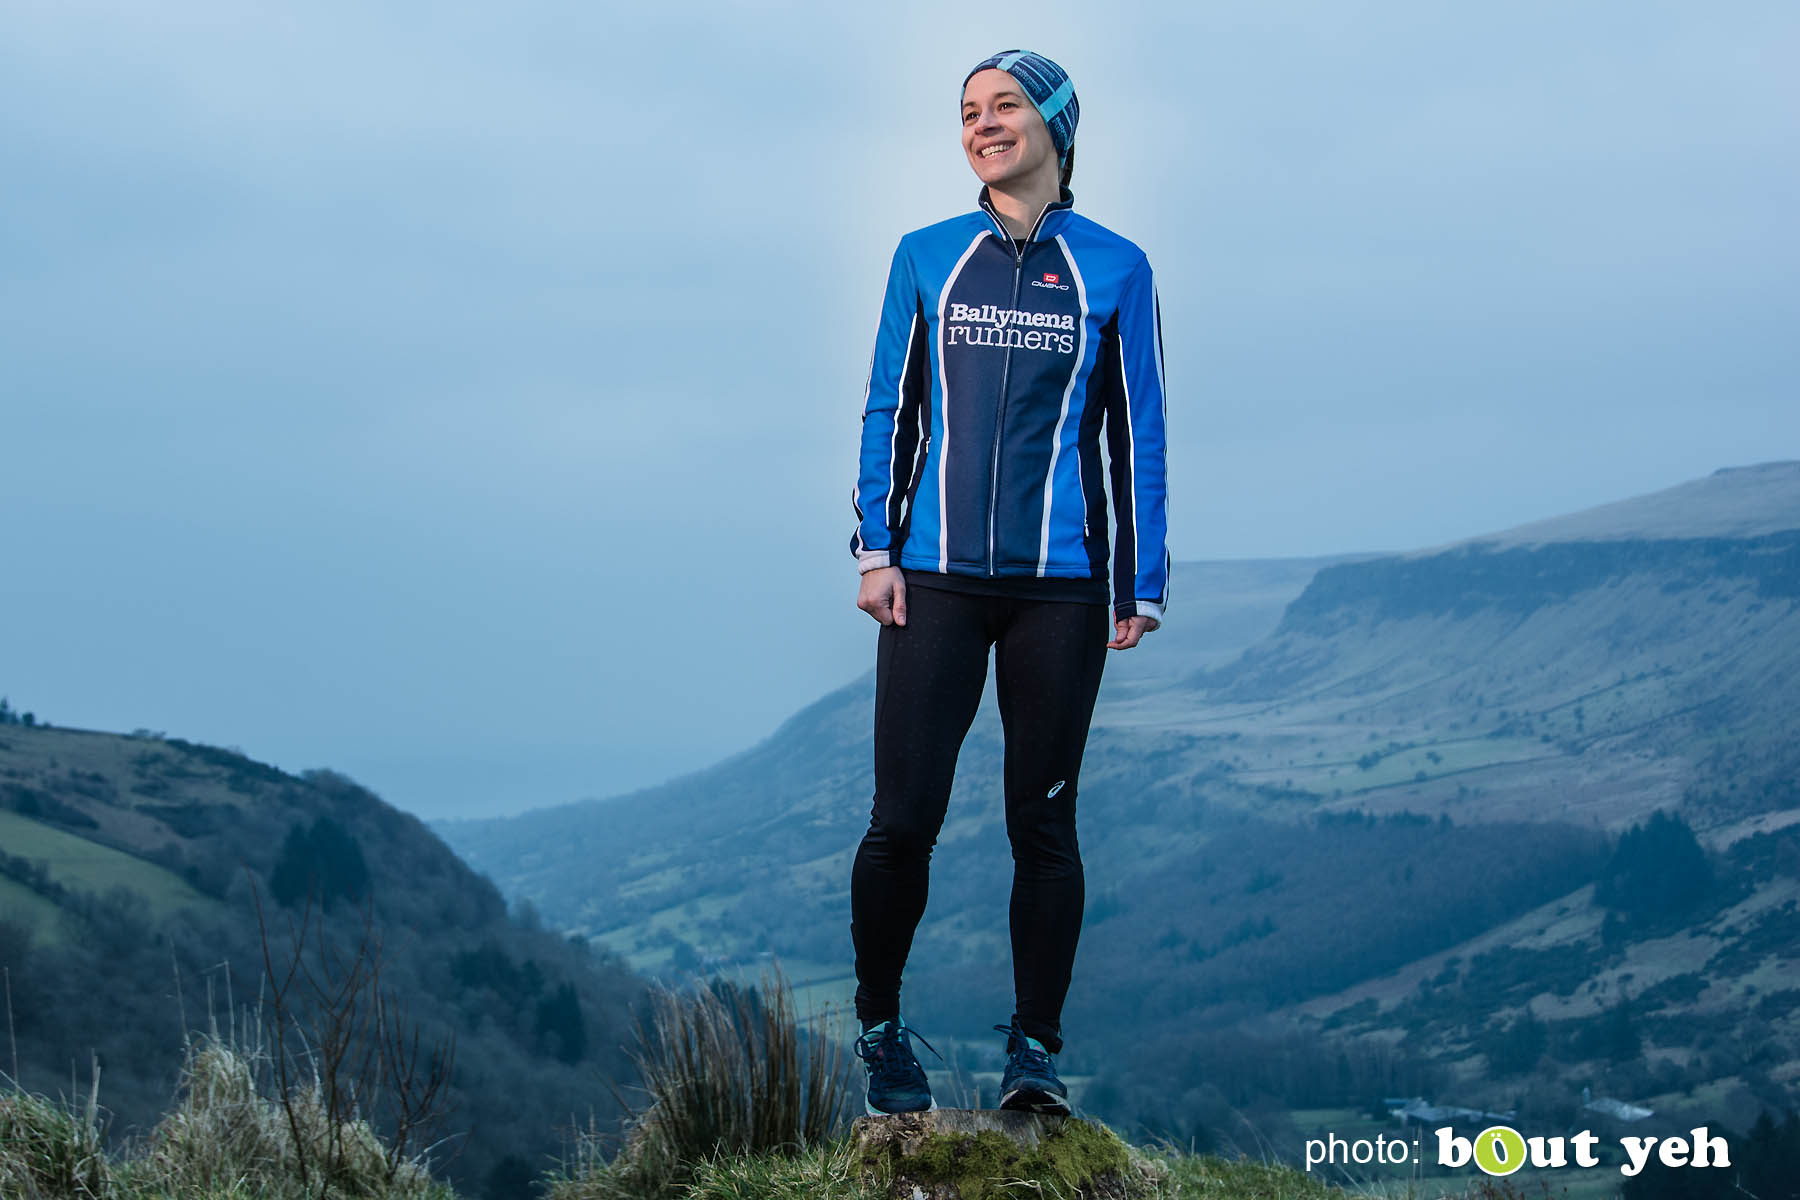 Ruth, of Ballymena Runners, at Glenariff Forest, Northern Ireland. Photo 0595.